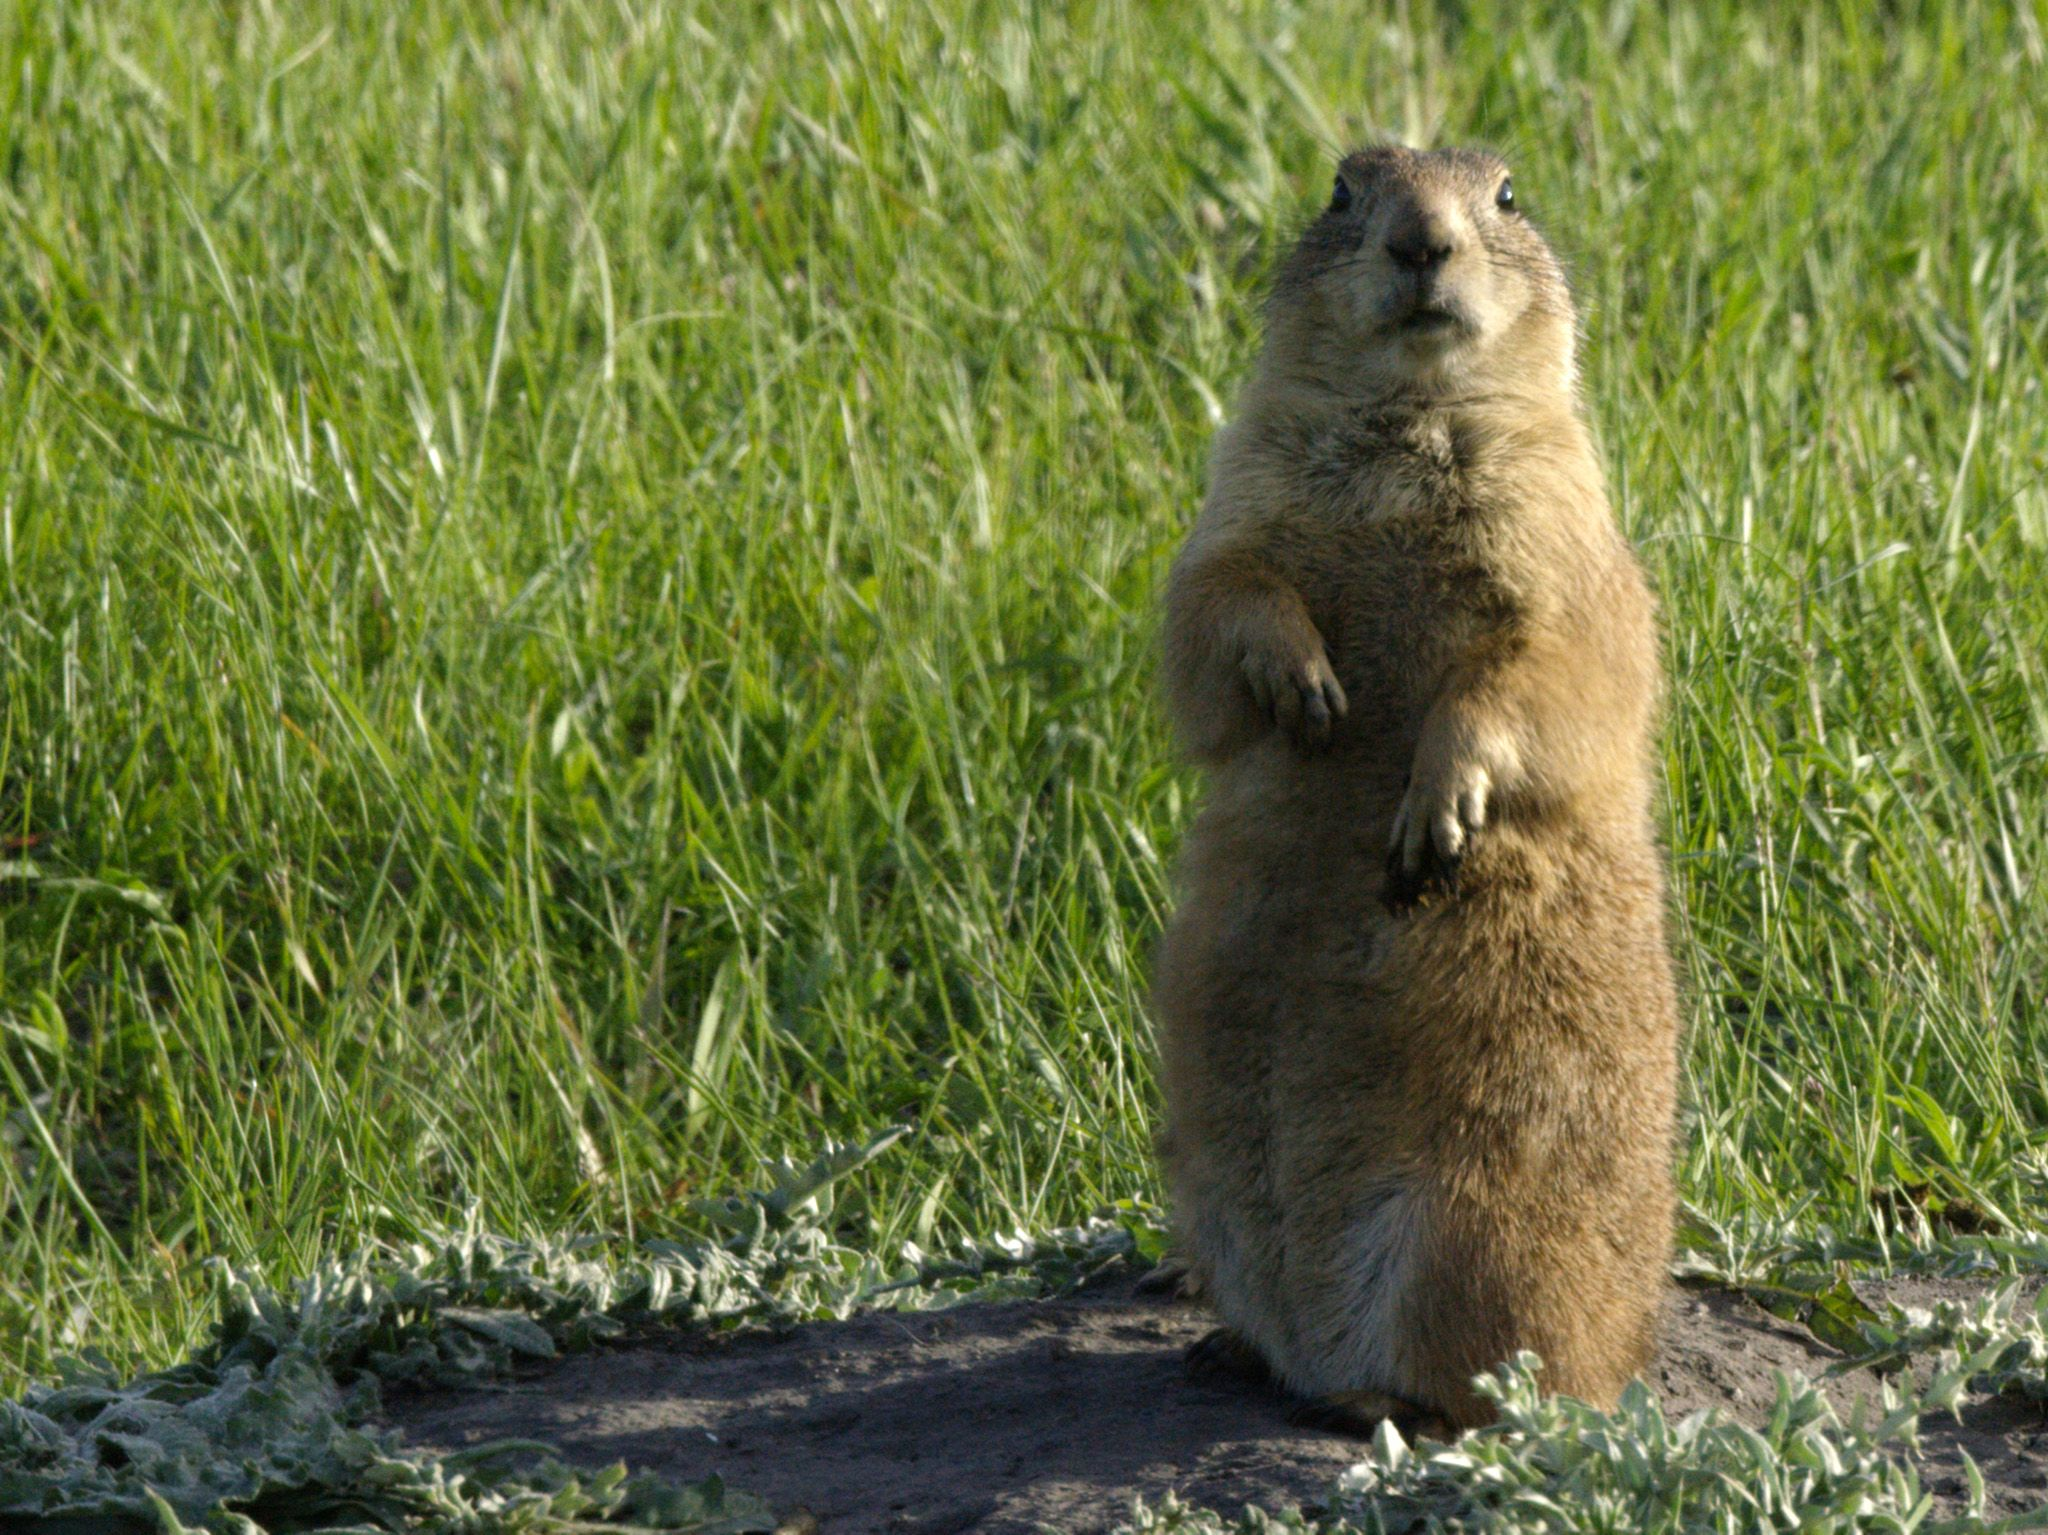 Custer State Park, SD:  A Prairie Dog on its hind legs keeping an eye out for predators. This... [Photo of the day - April 2018]